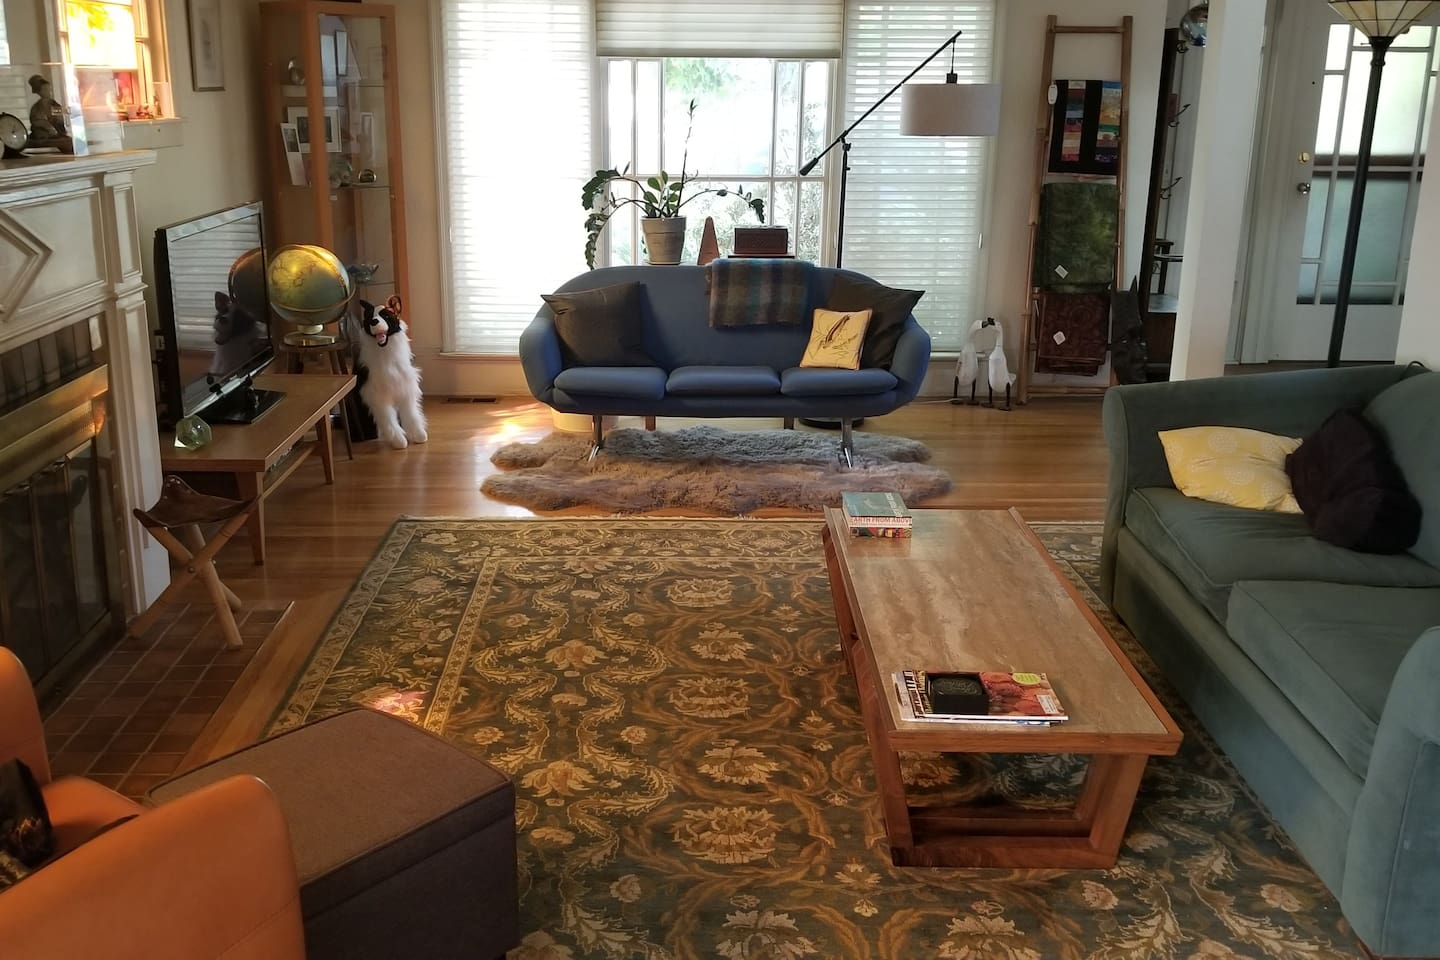 Opening home for evacuees - Houses for Rent in Oakland, California ...